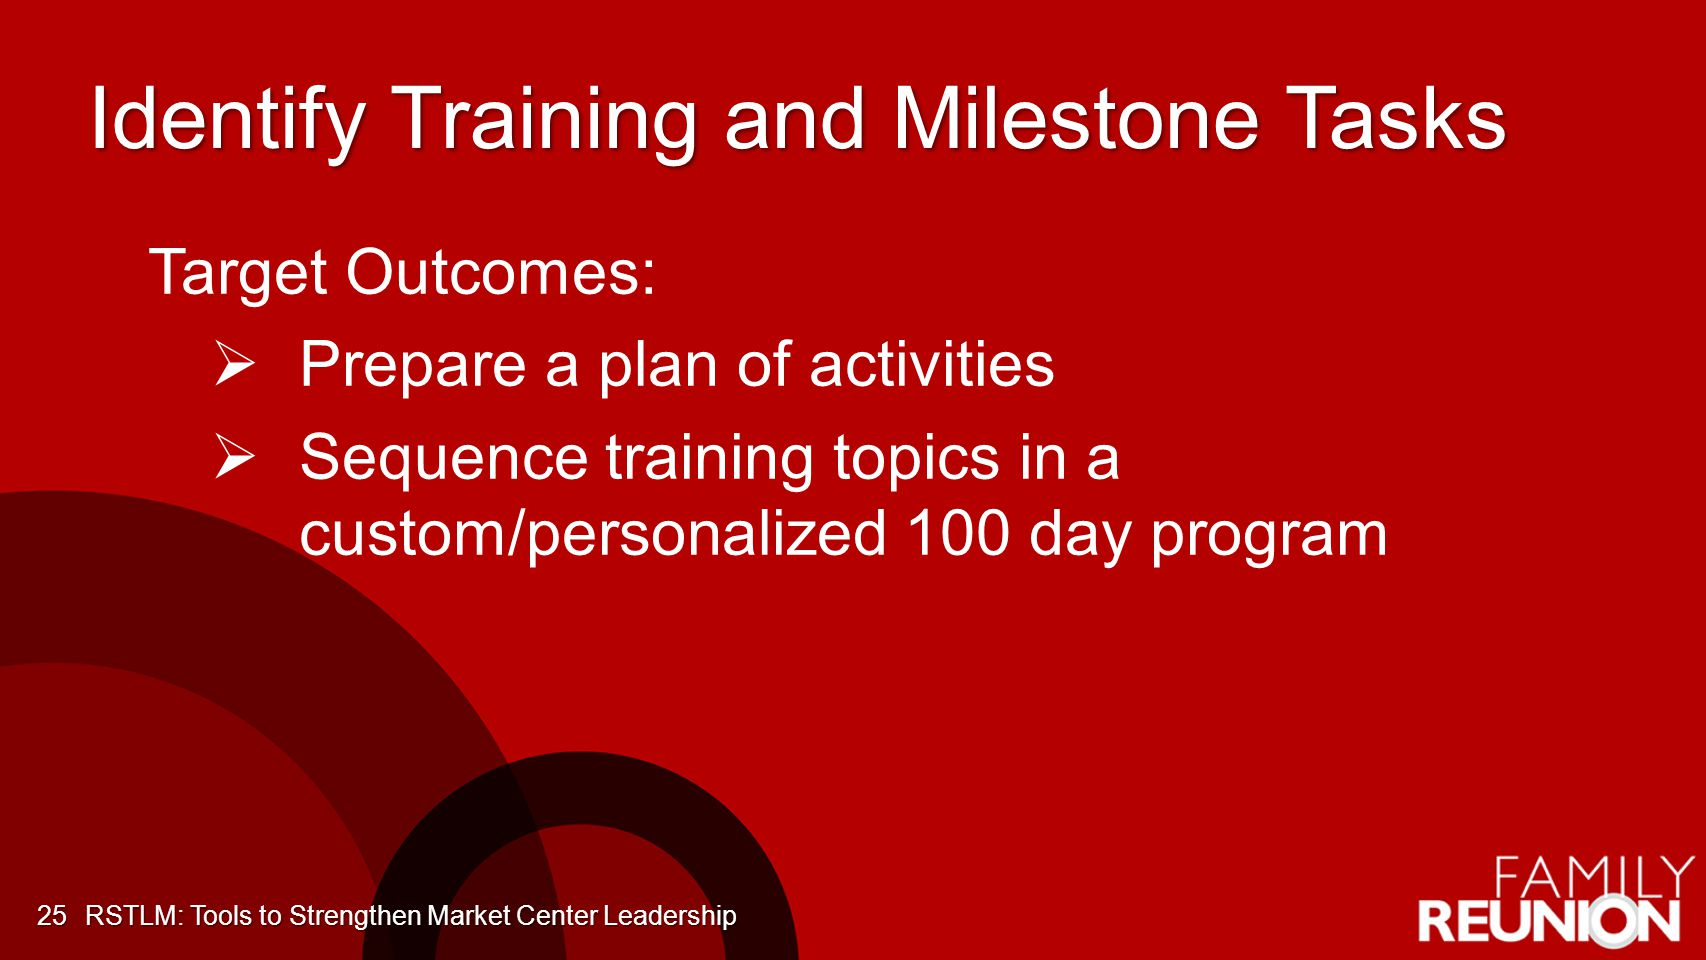 Identify Training and Milestone Tasks 25 Target Outcomes: Prepare a plan of activities Sequence training topics in a custom/personalized 100 day program RSTLM: Tools to Strengthen Market Center Leadership